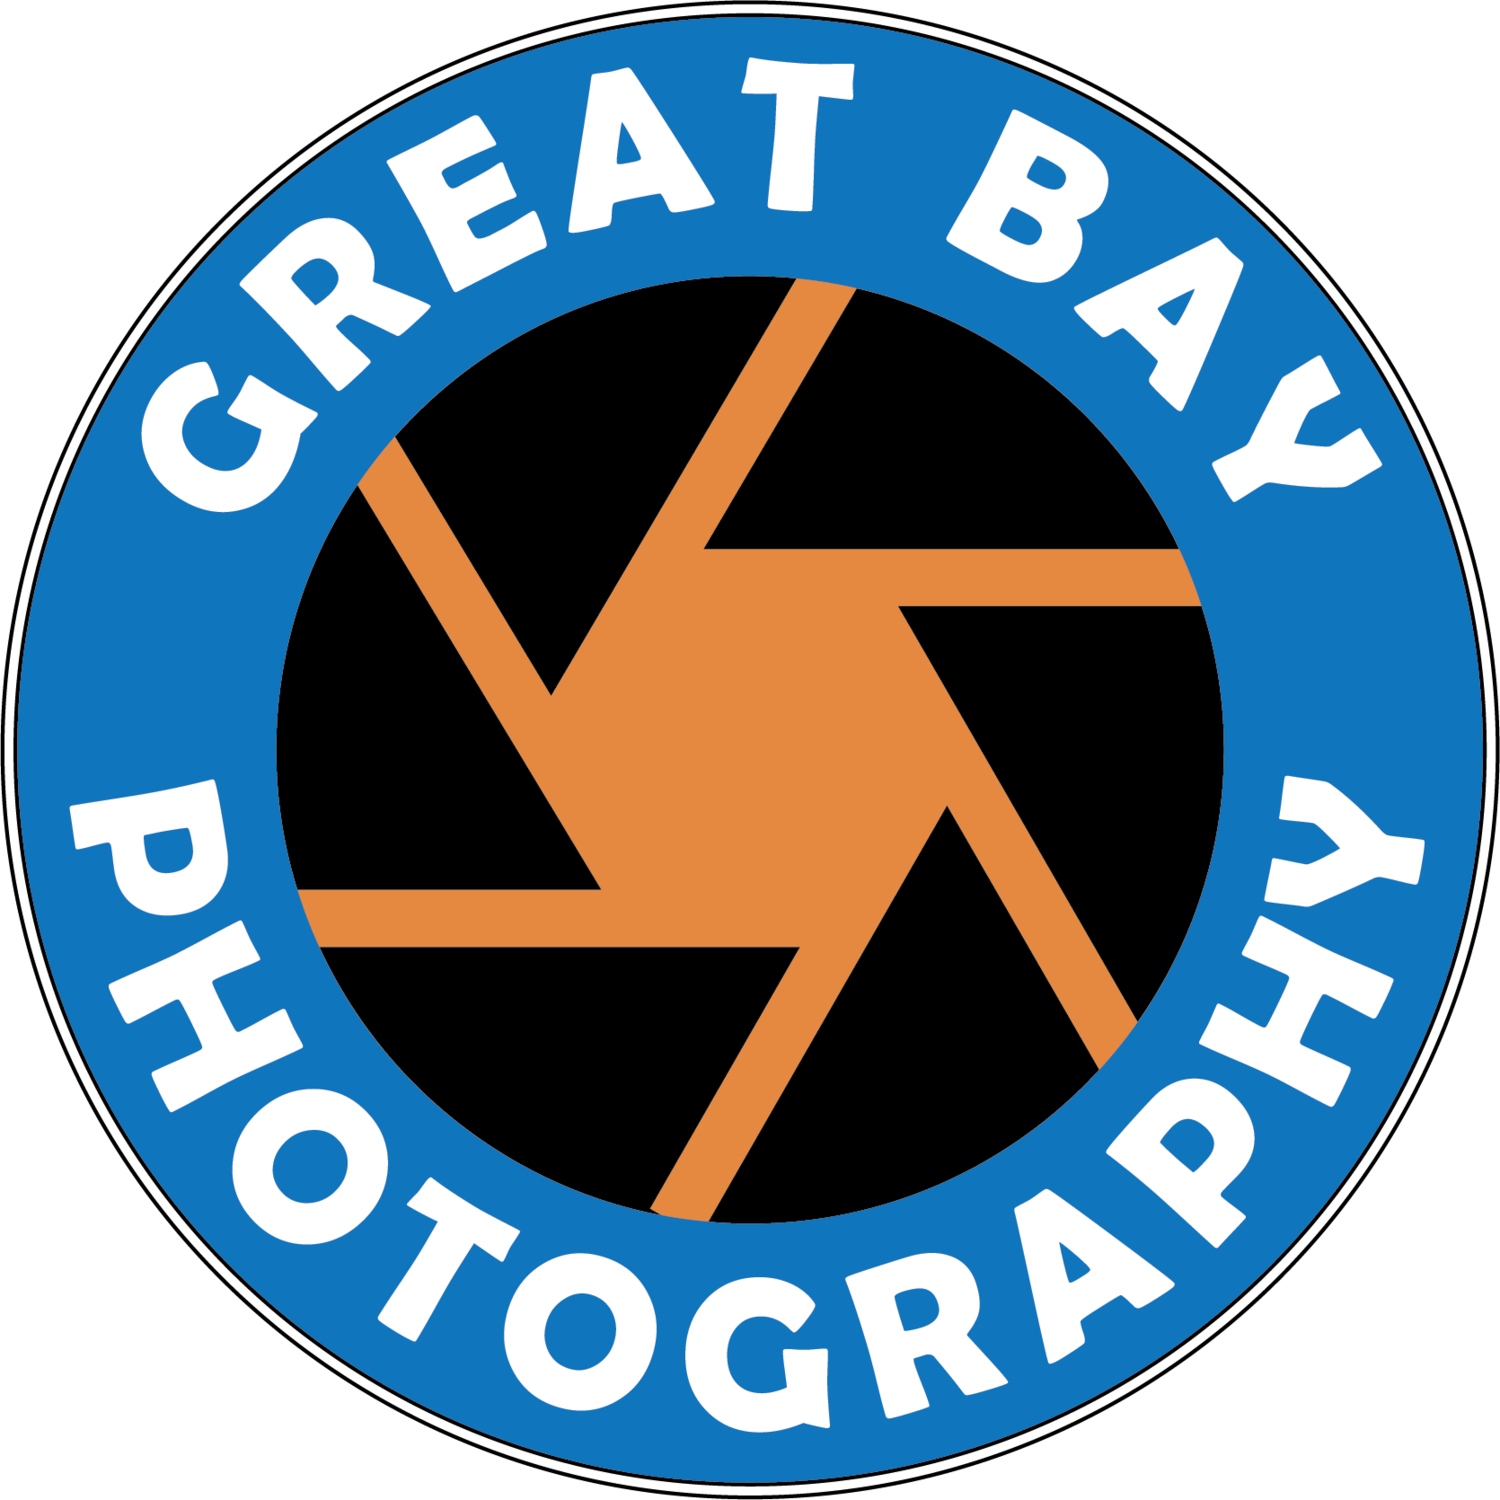 Real Estate Photography - Great Bay Photography, Serving the New Hampshire Seacoast and Southern Maine